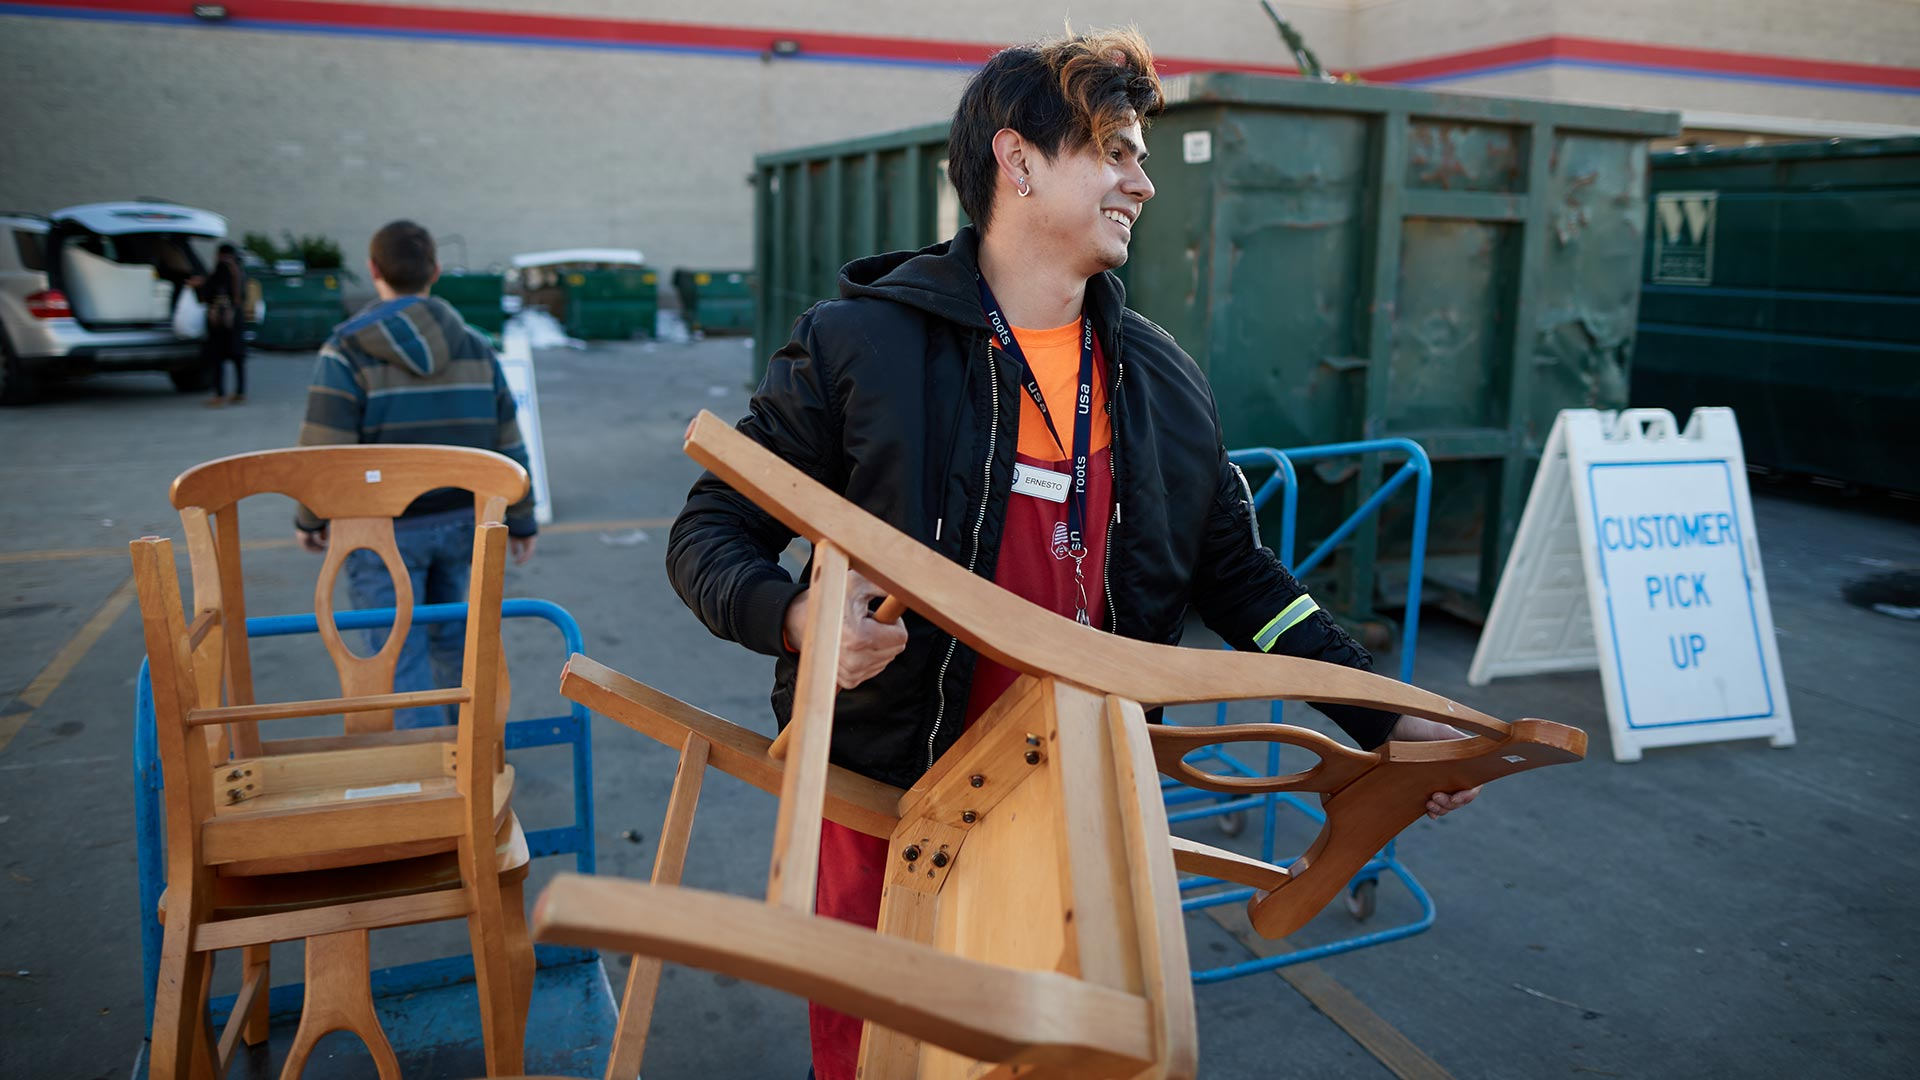 Associate Ernesto helps a customer pick up a donated chair